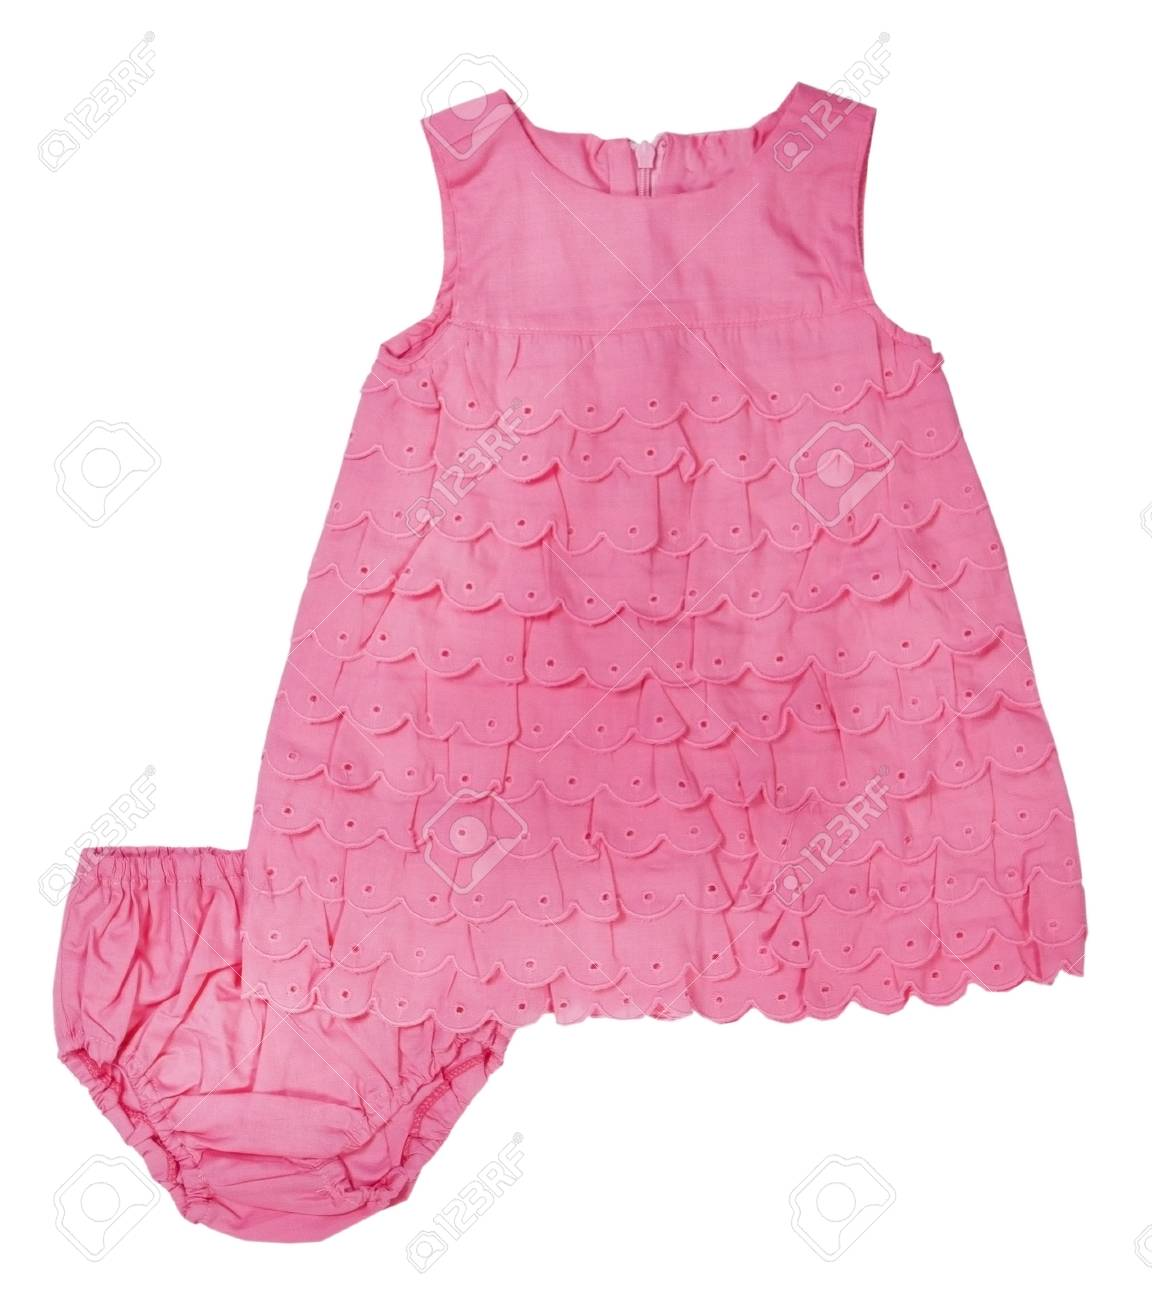 0364ca77092a Pink Knitted Baby Dress On A White Background Stock Photo